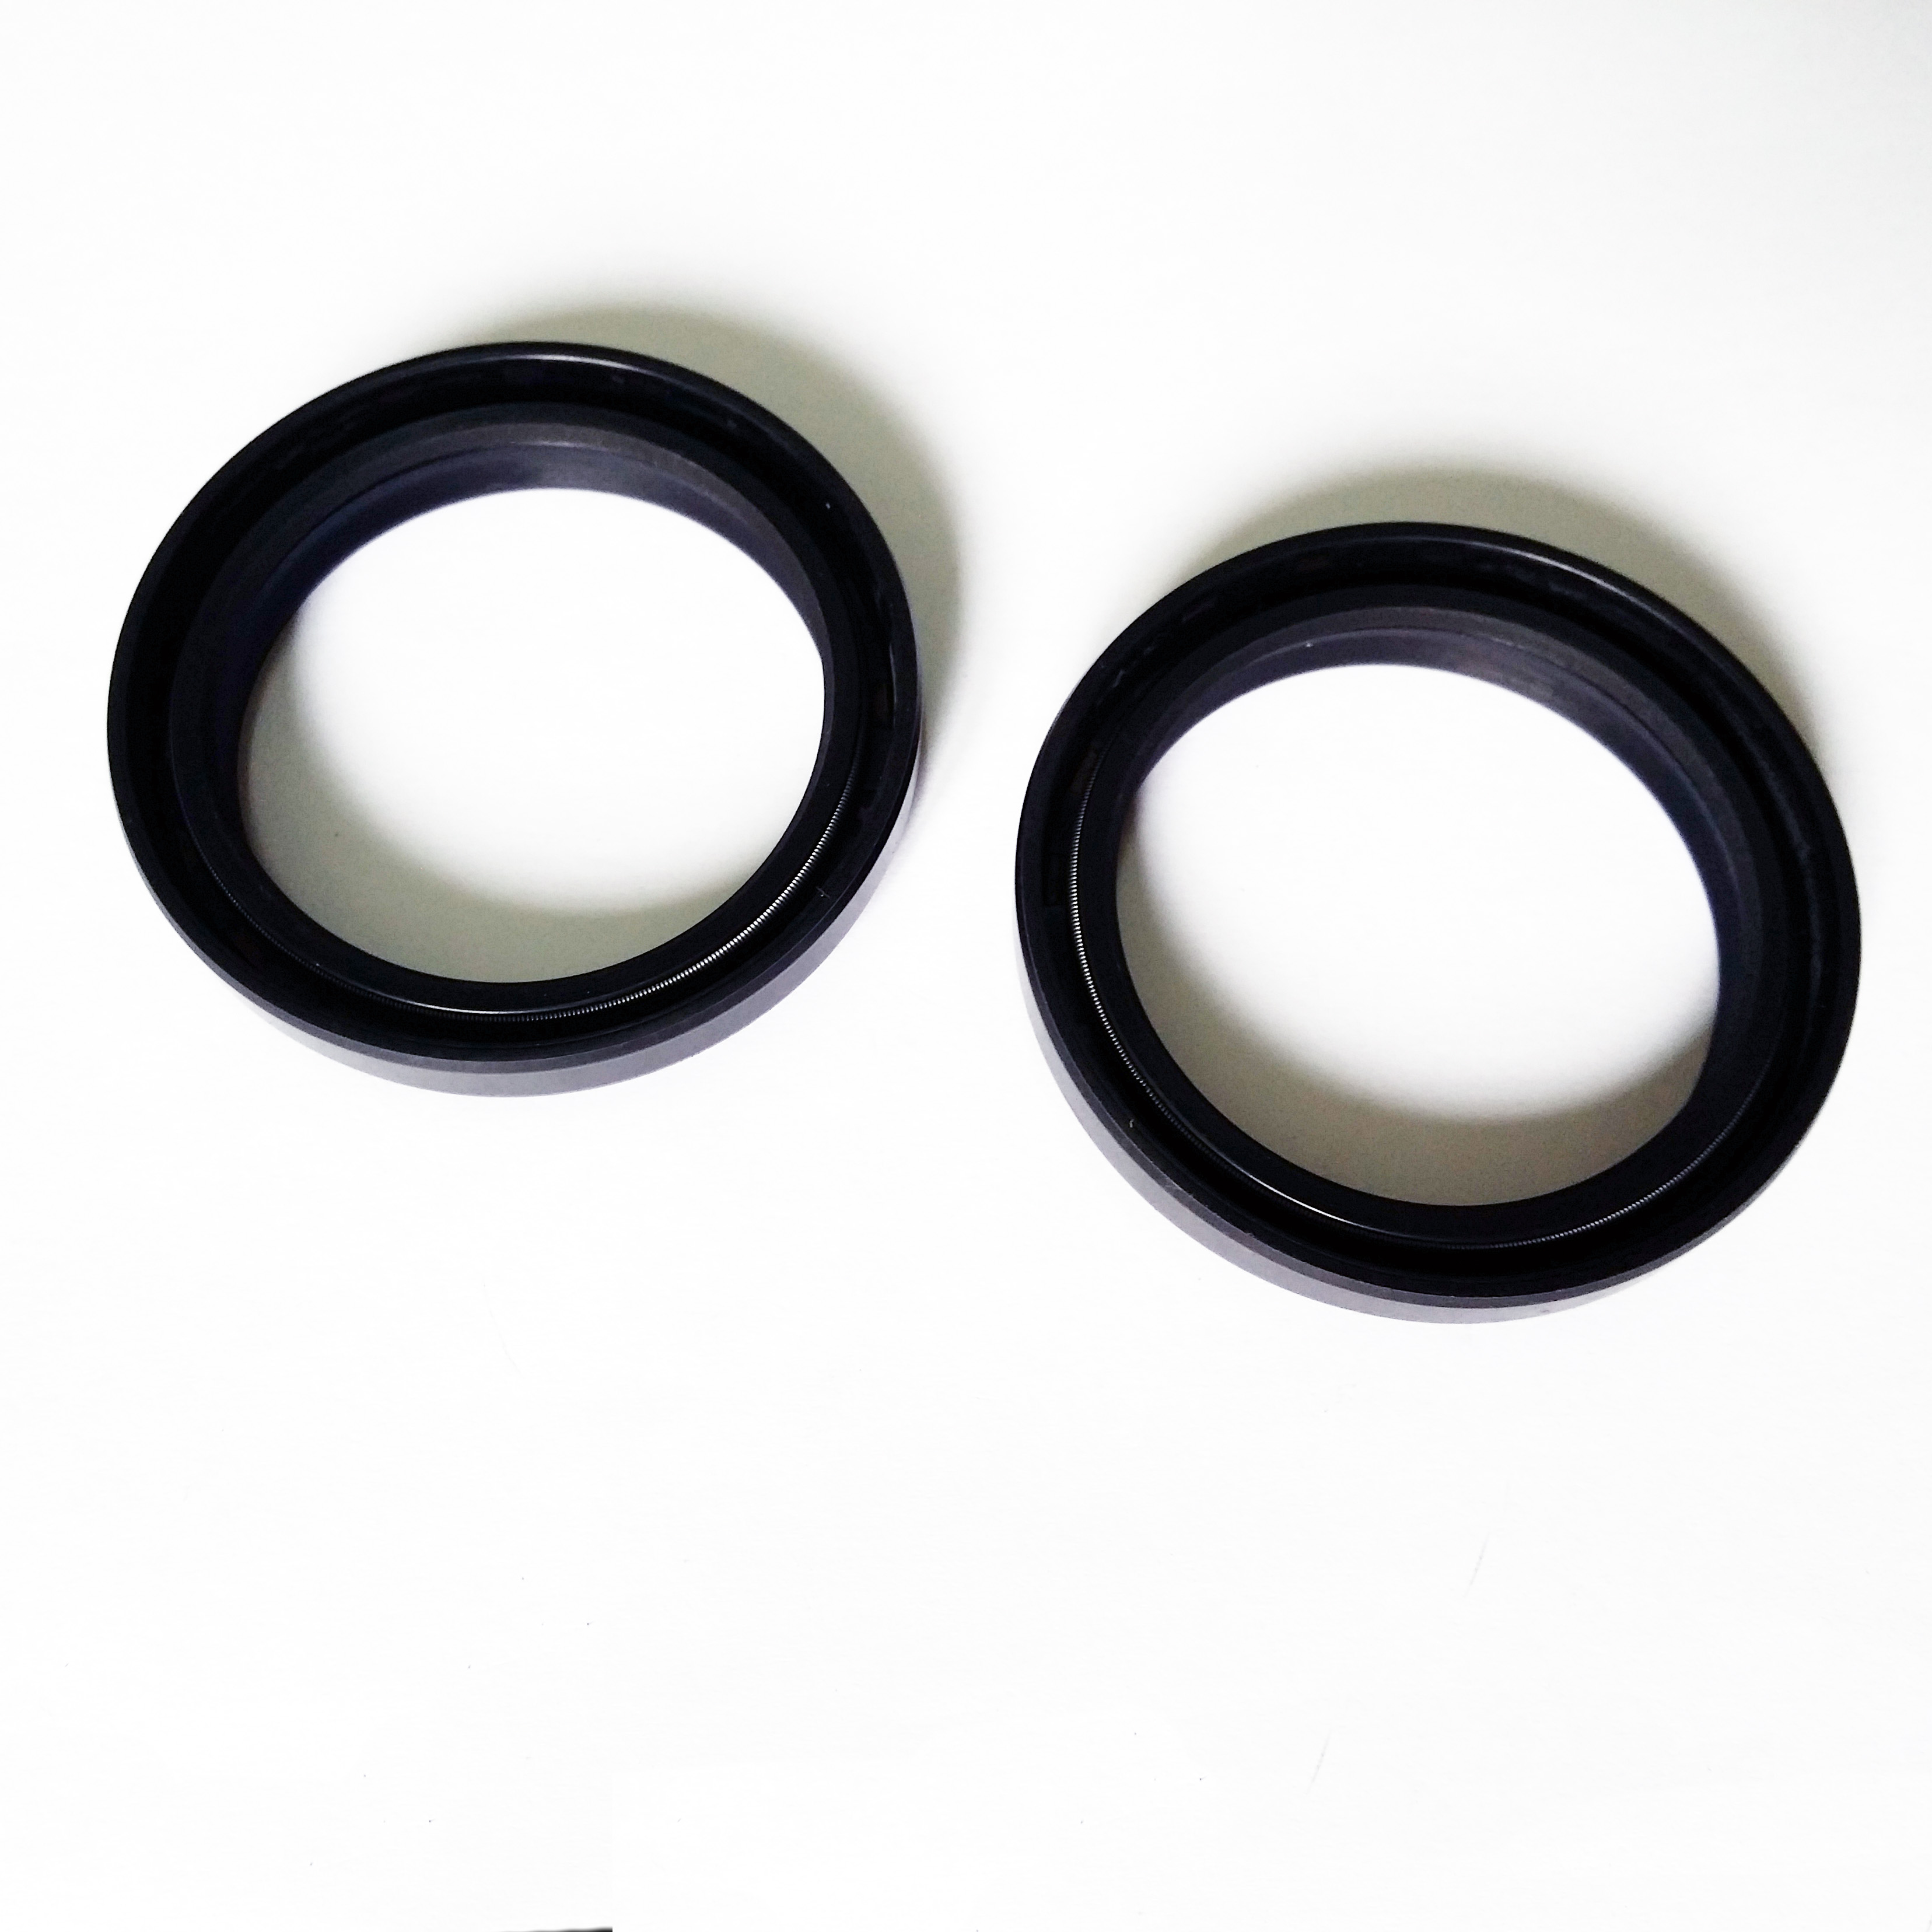 K-Tech Yamaha XJR1300 1999-2005 NOK Front Fork Oil Seals